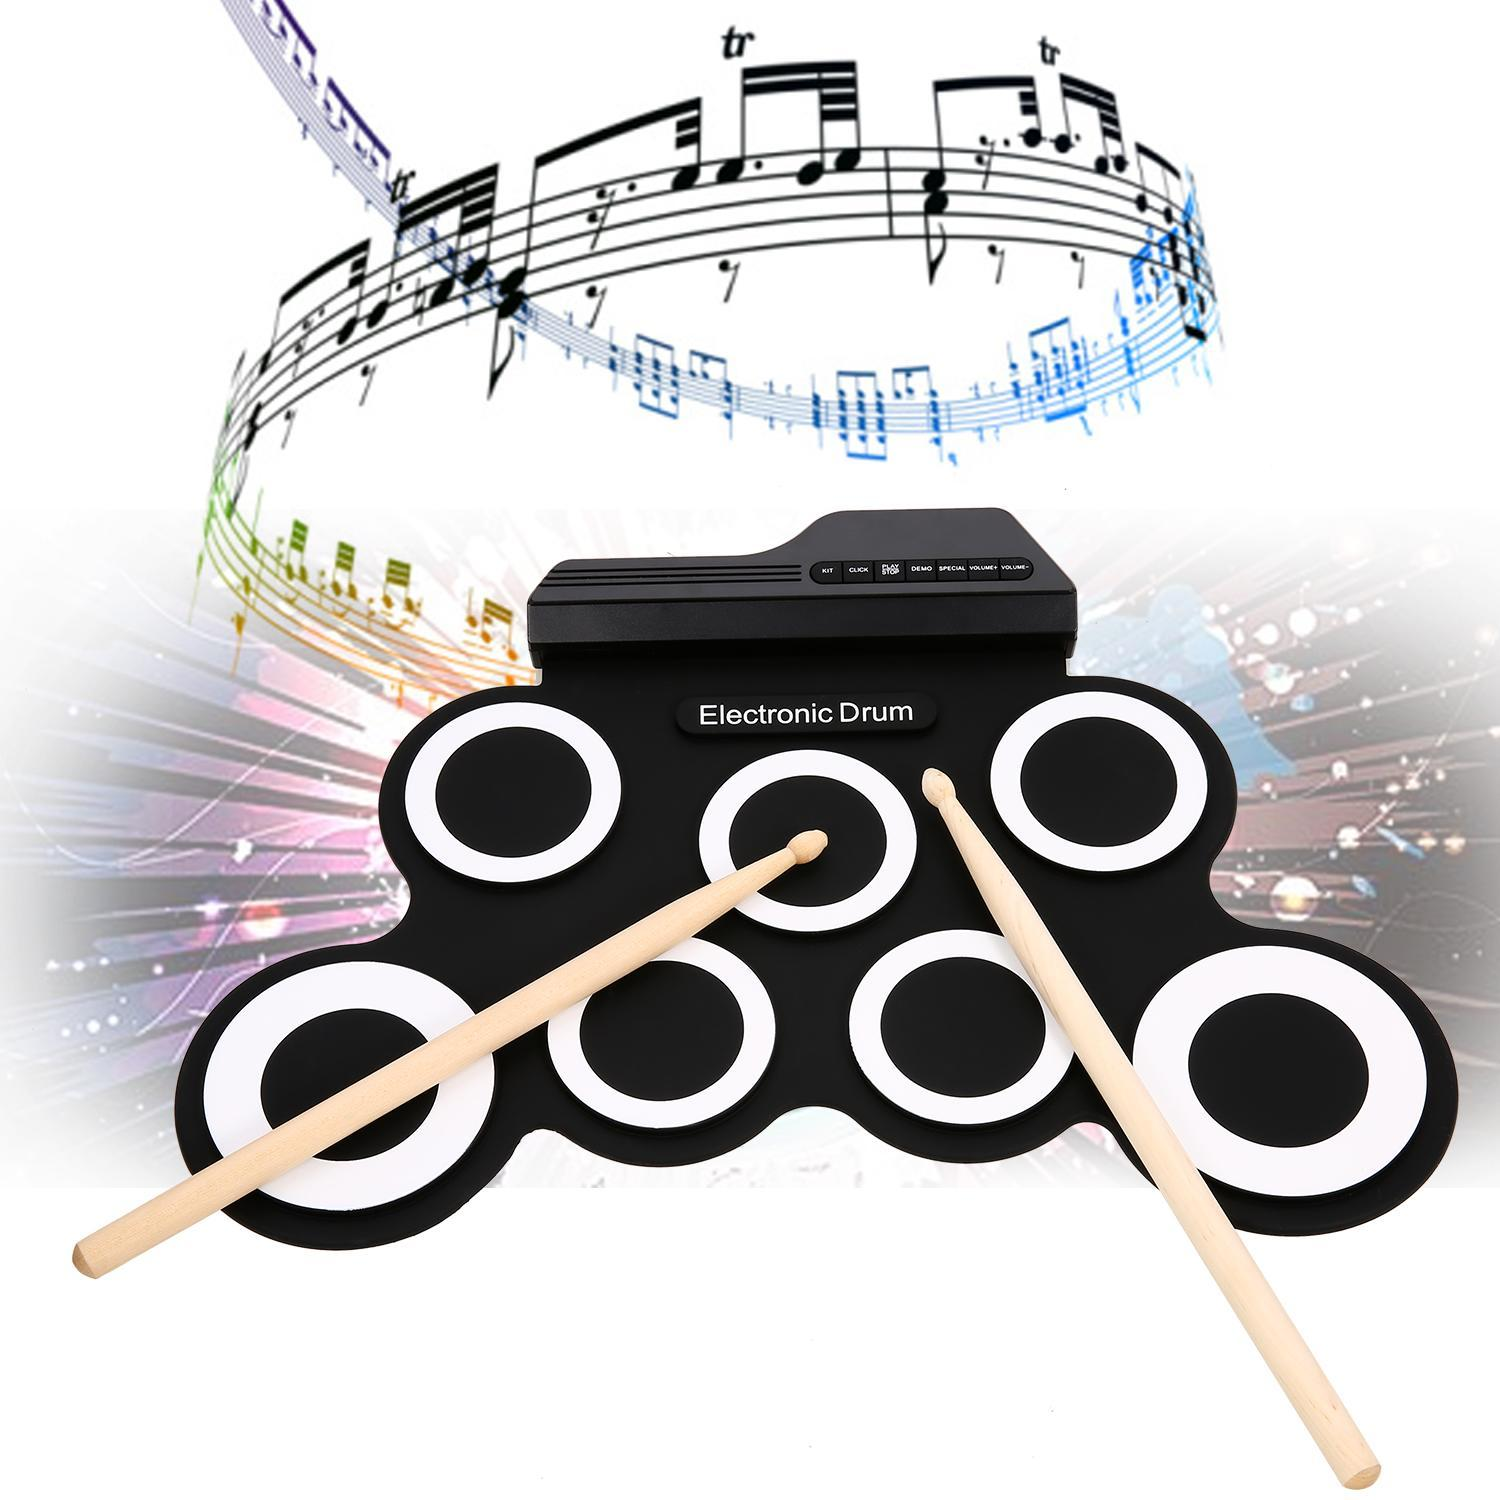 9 Pad Electronic Roll Up Drum Kit, USB MIDI With Built-in Speakers, Foot Pedals, Drum... by